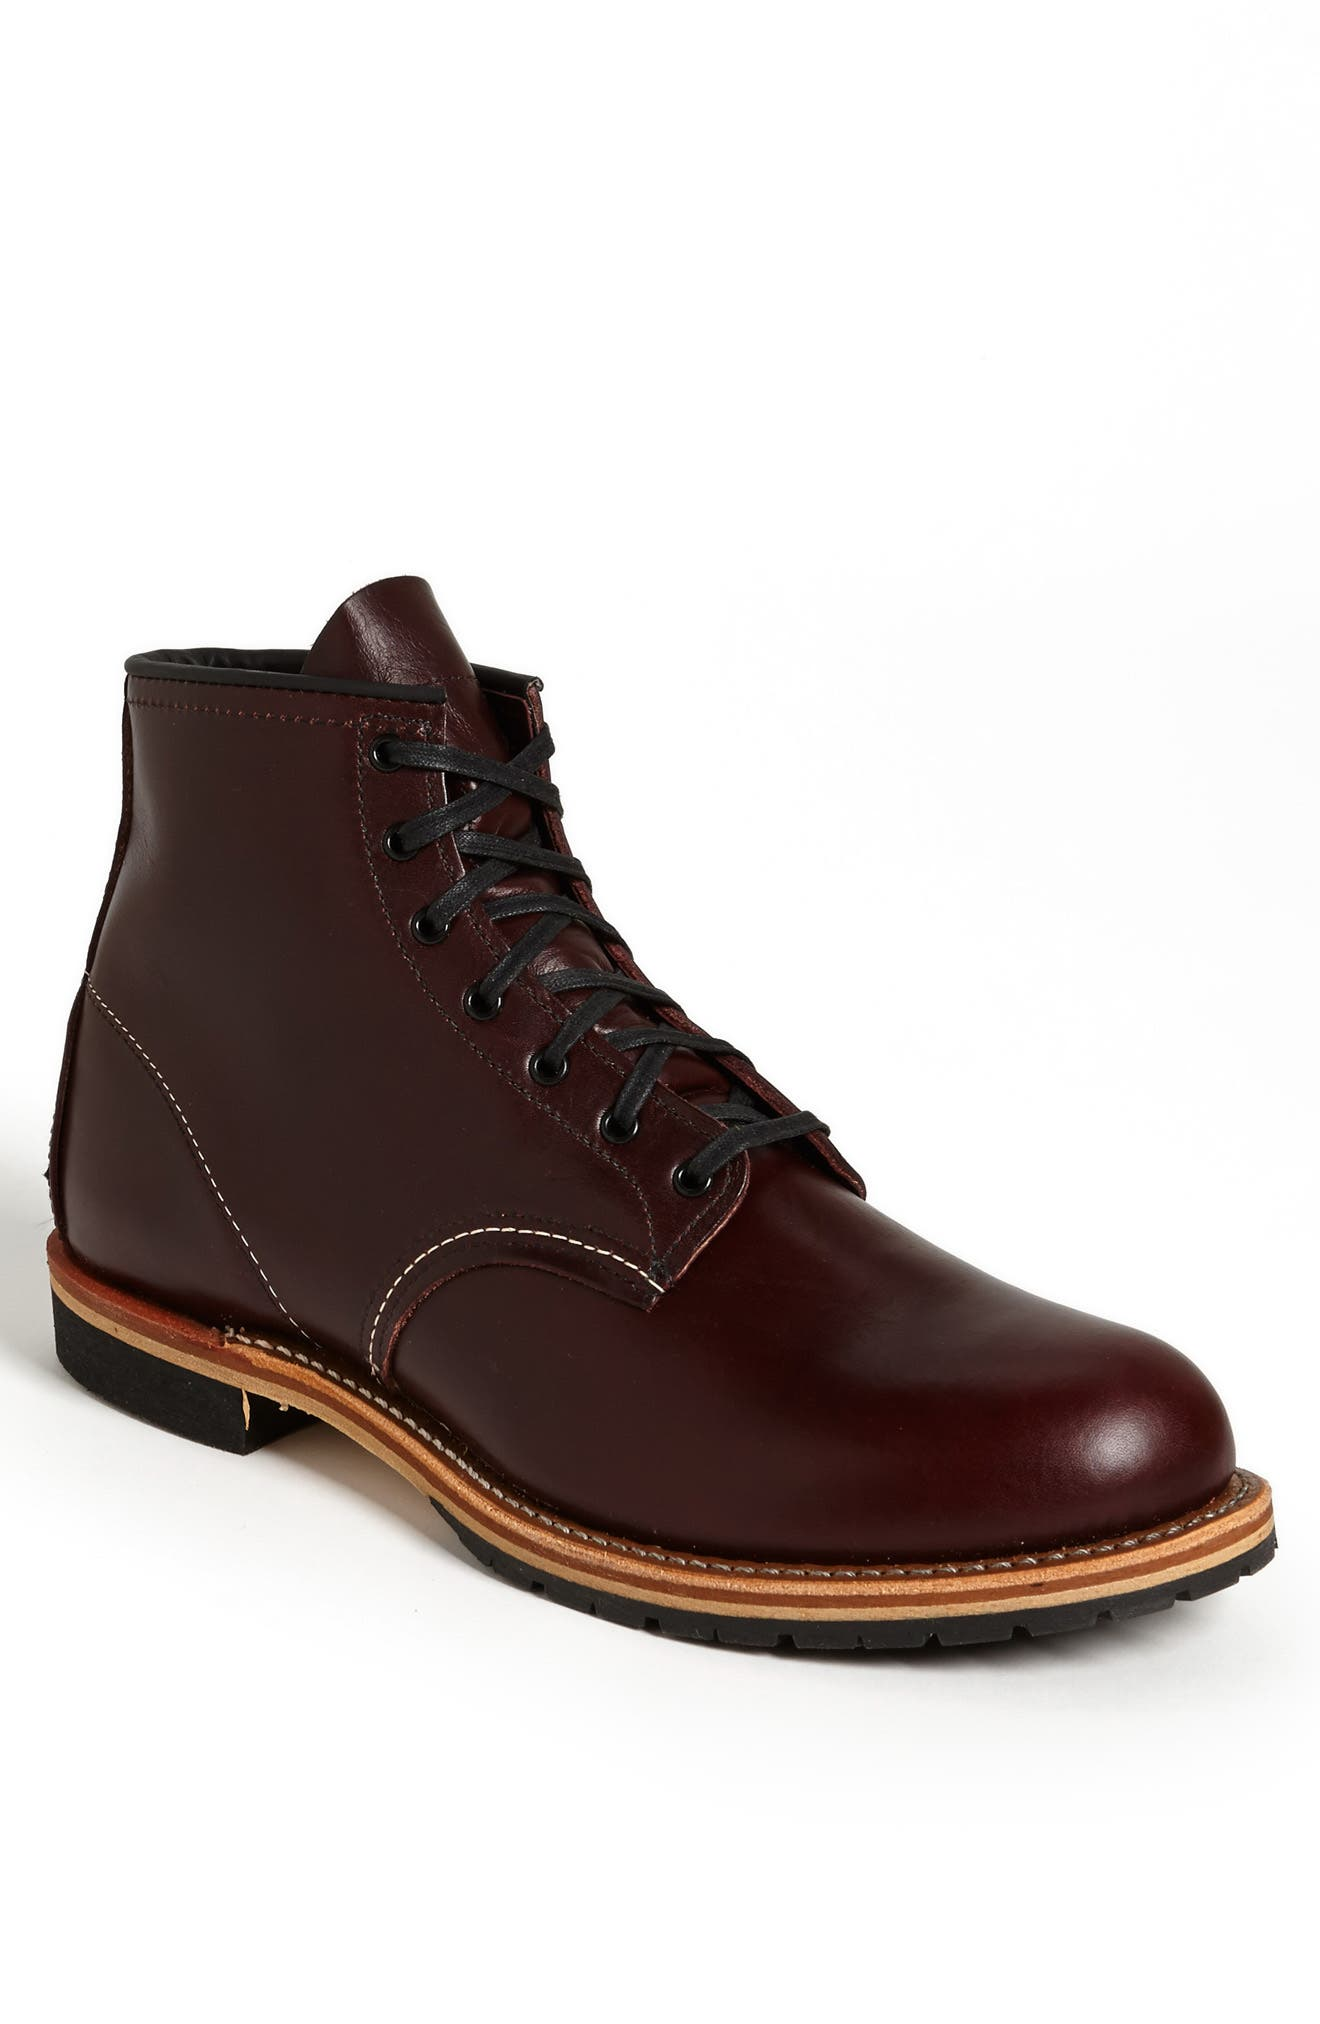 Alternate Image 1 Selected - Red Wing 'Beckman' Boot (Men) (Online Only)